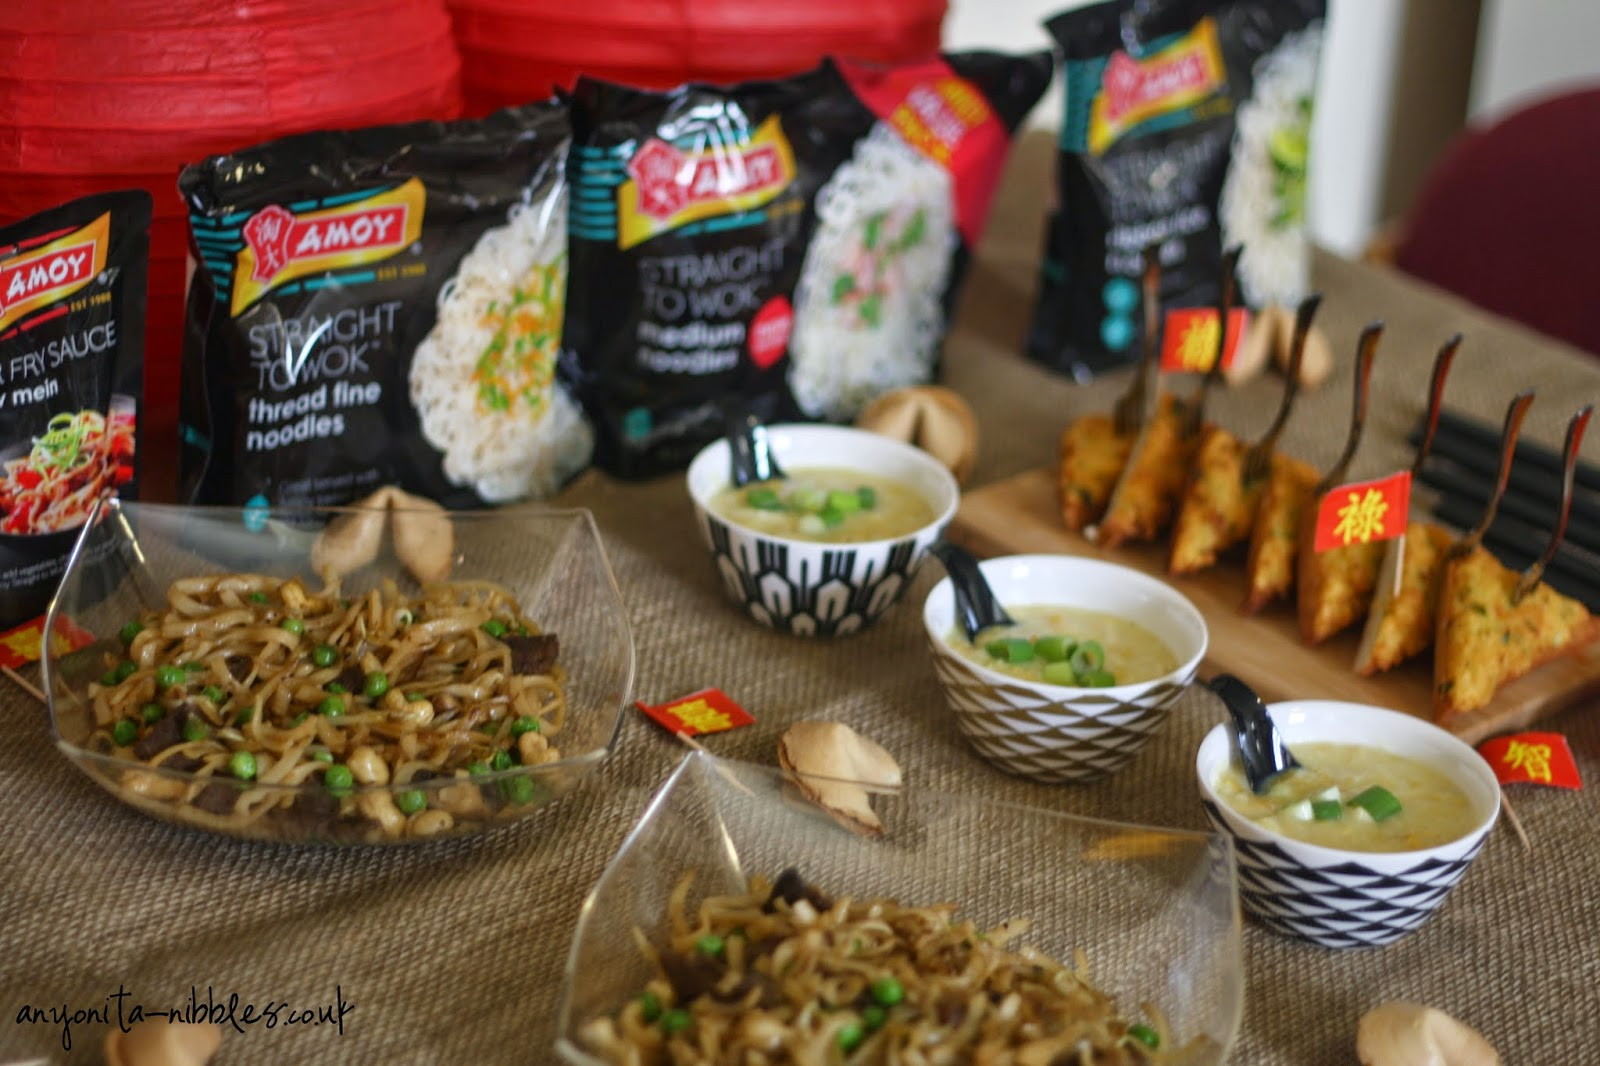 A Gluten Free Chinese Banquet from Anyonita-nibbles.co.uk